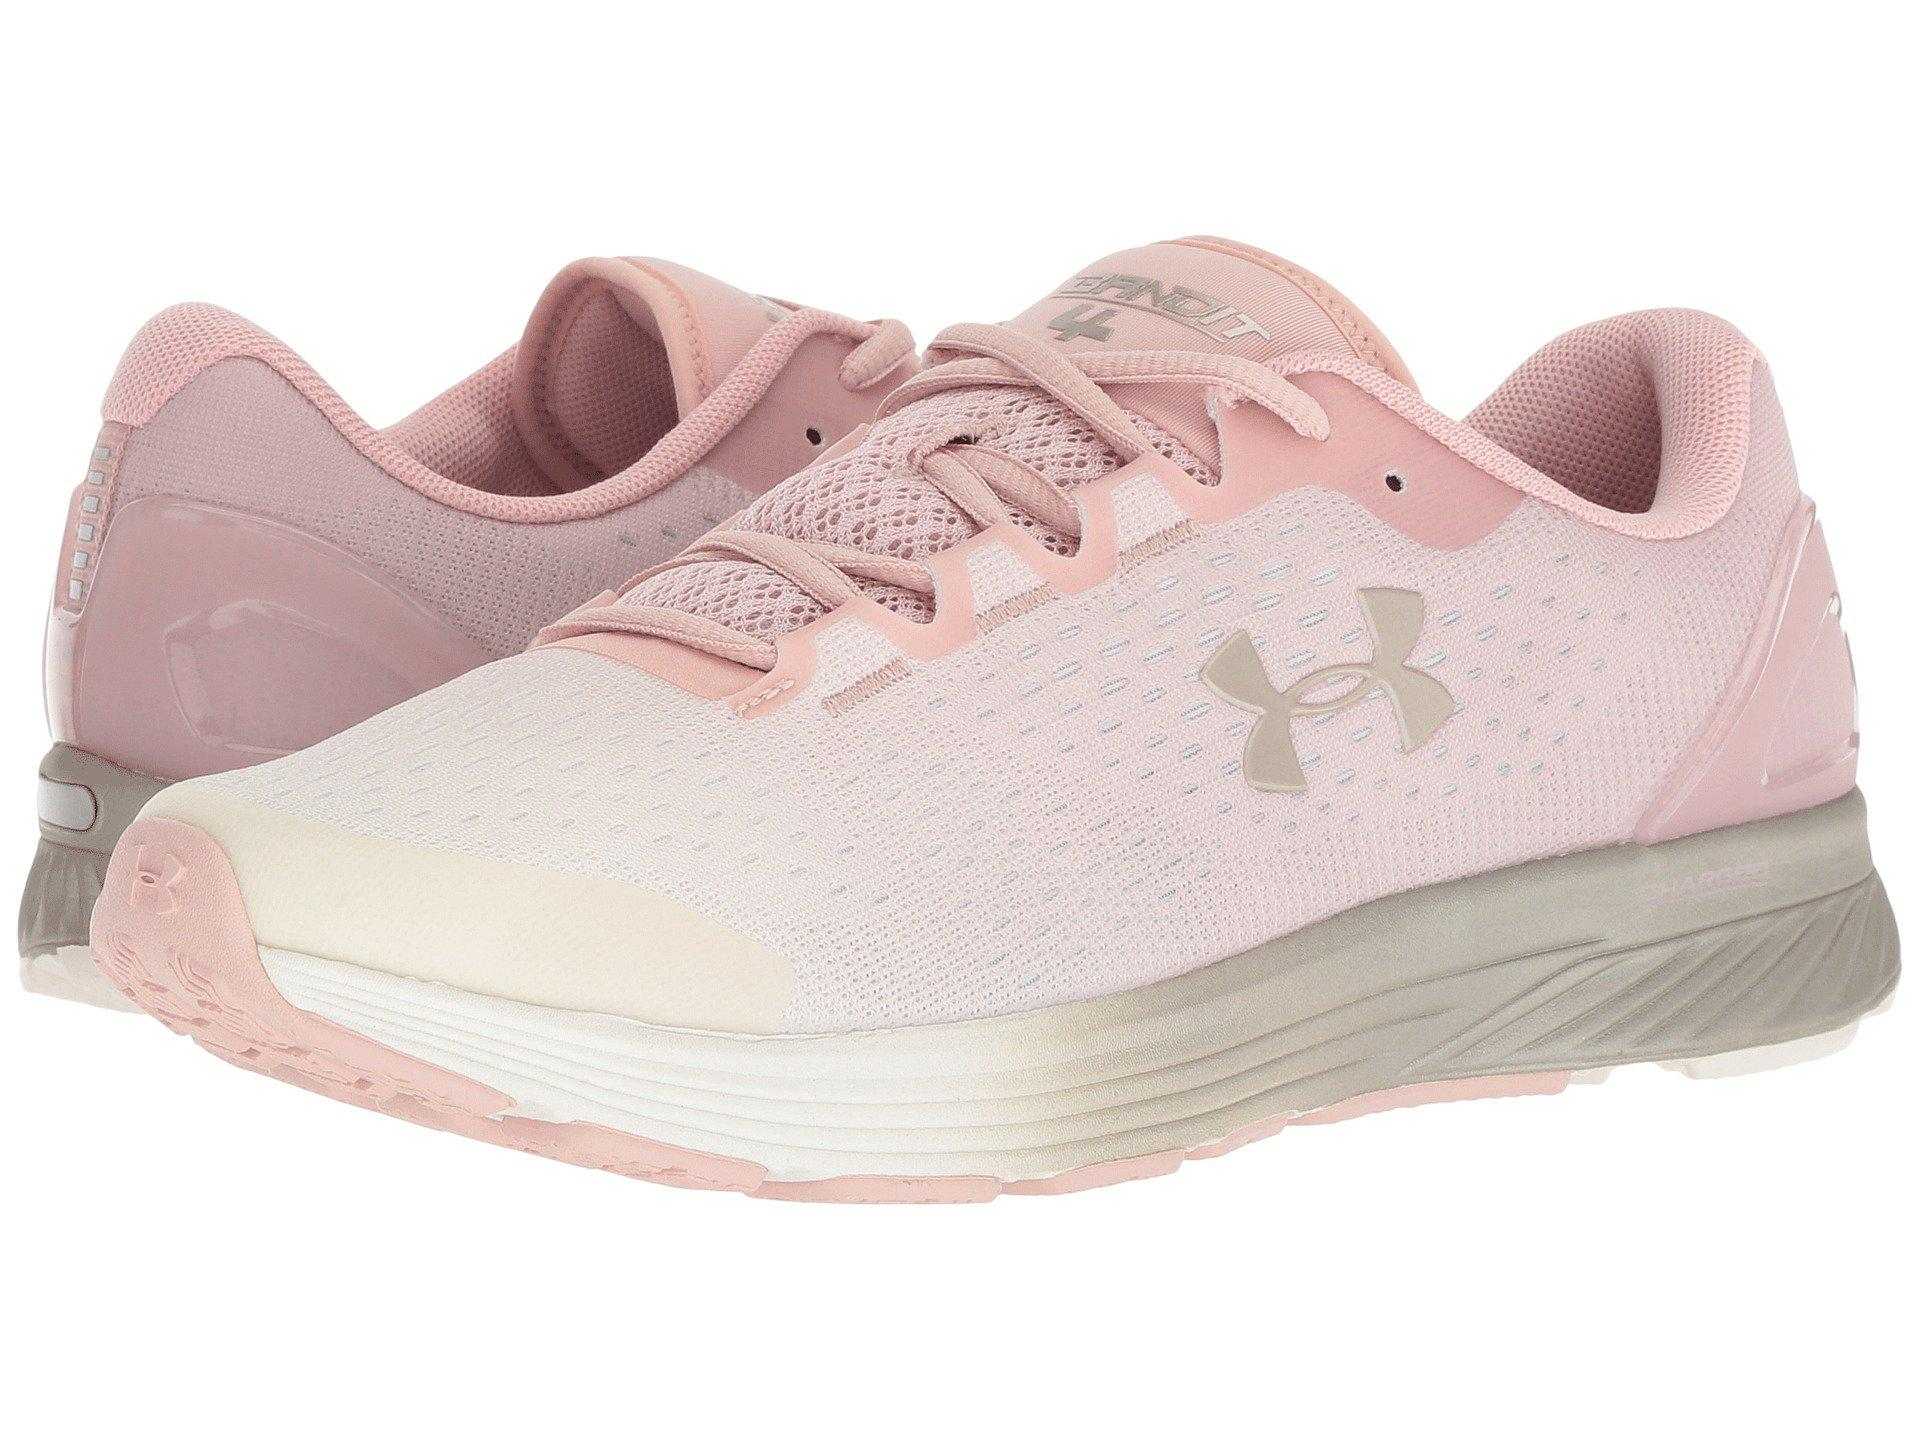 various colors aeb4c 63058 Under Armour Ua Charged Bandit 4 in Pink - Lyst